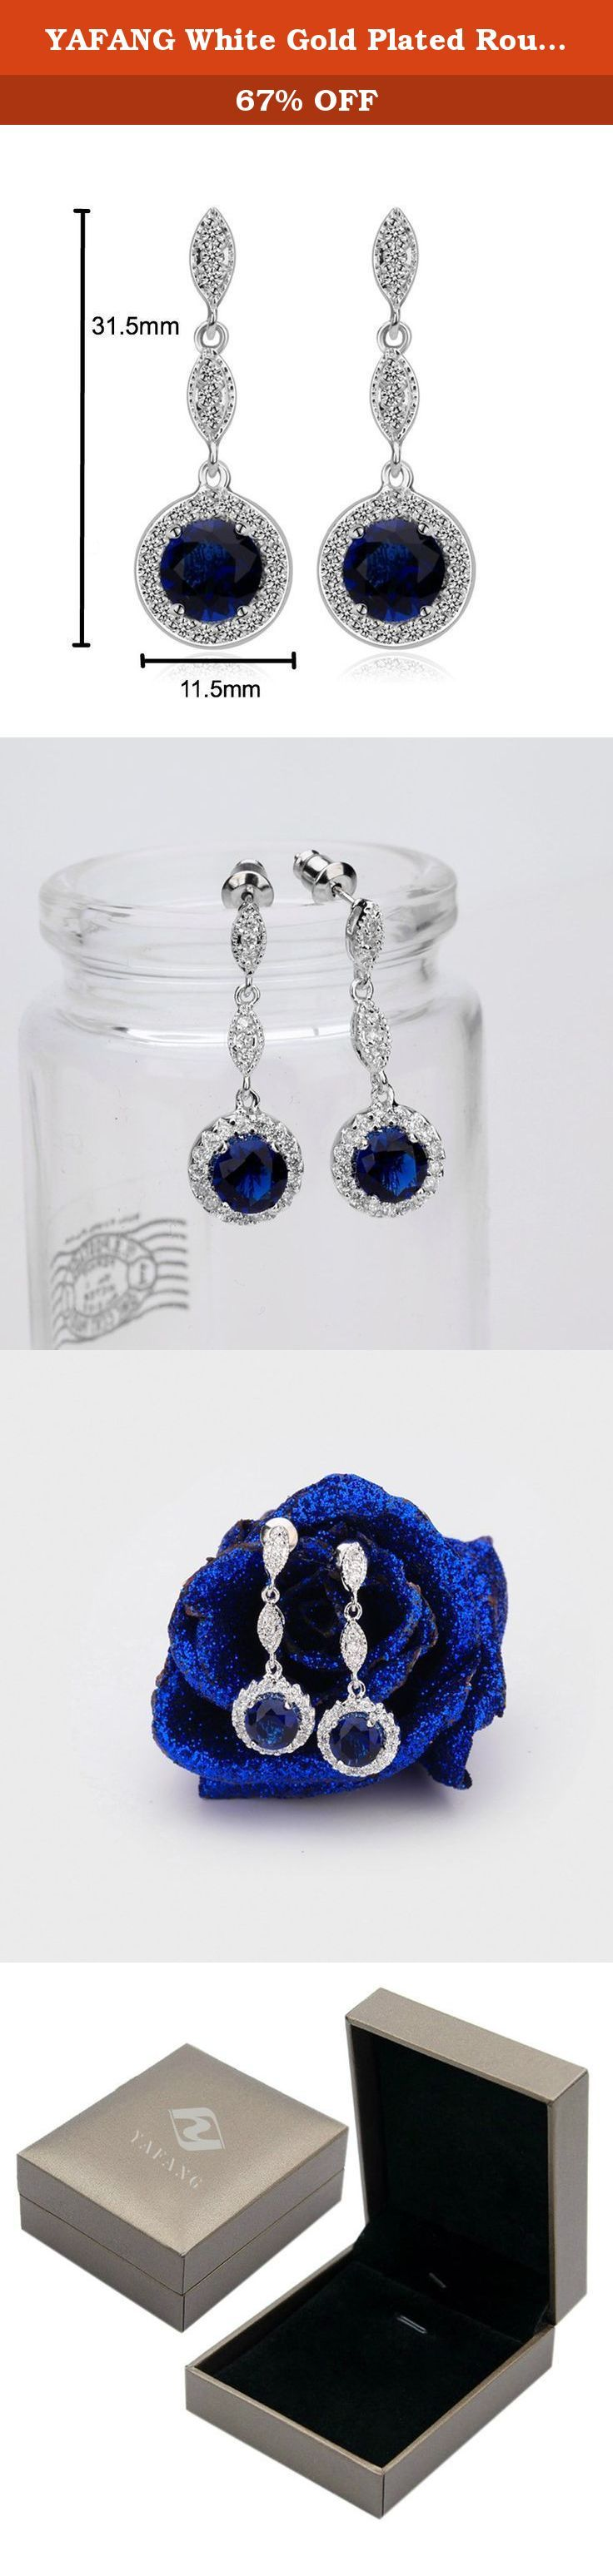 YAFANG White Gold Plated Round AAA Cubic Zirconia Blue Sapphire Dangle Earrings. Metal Material We're using 100% eco-friendly gold-plated copper and alloy which are fade-proof and anti-allergy, suitable for even the most sensitive skin types. Gemstone Selection The gemstones we carefully selected are all above AAA quality clear zircon and Austrian imported Swarovski elements crystal with high purity, unparalleled surface glossiness and refraction. Polishing Methods Most of the gemstone...